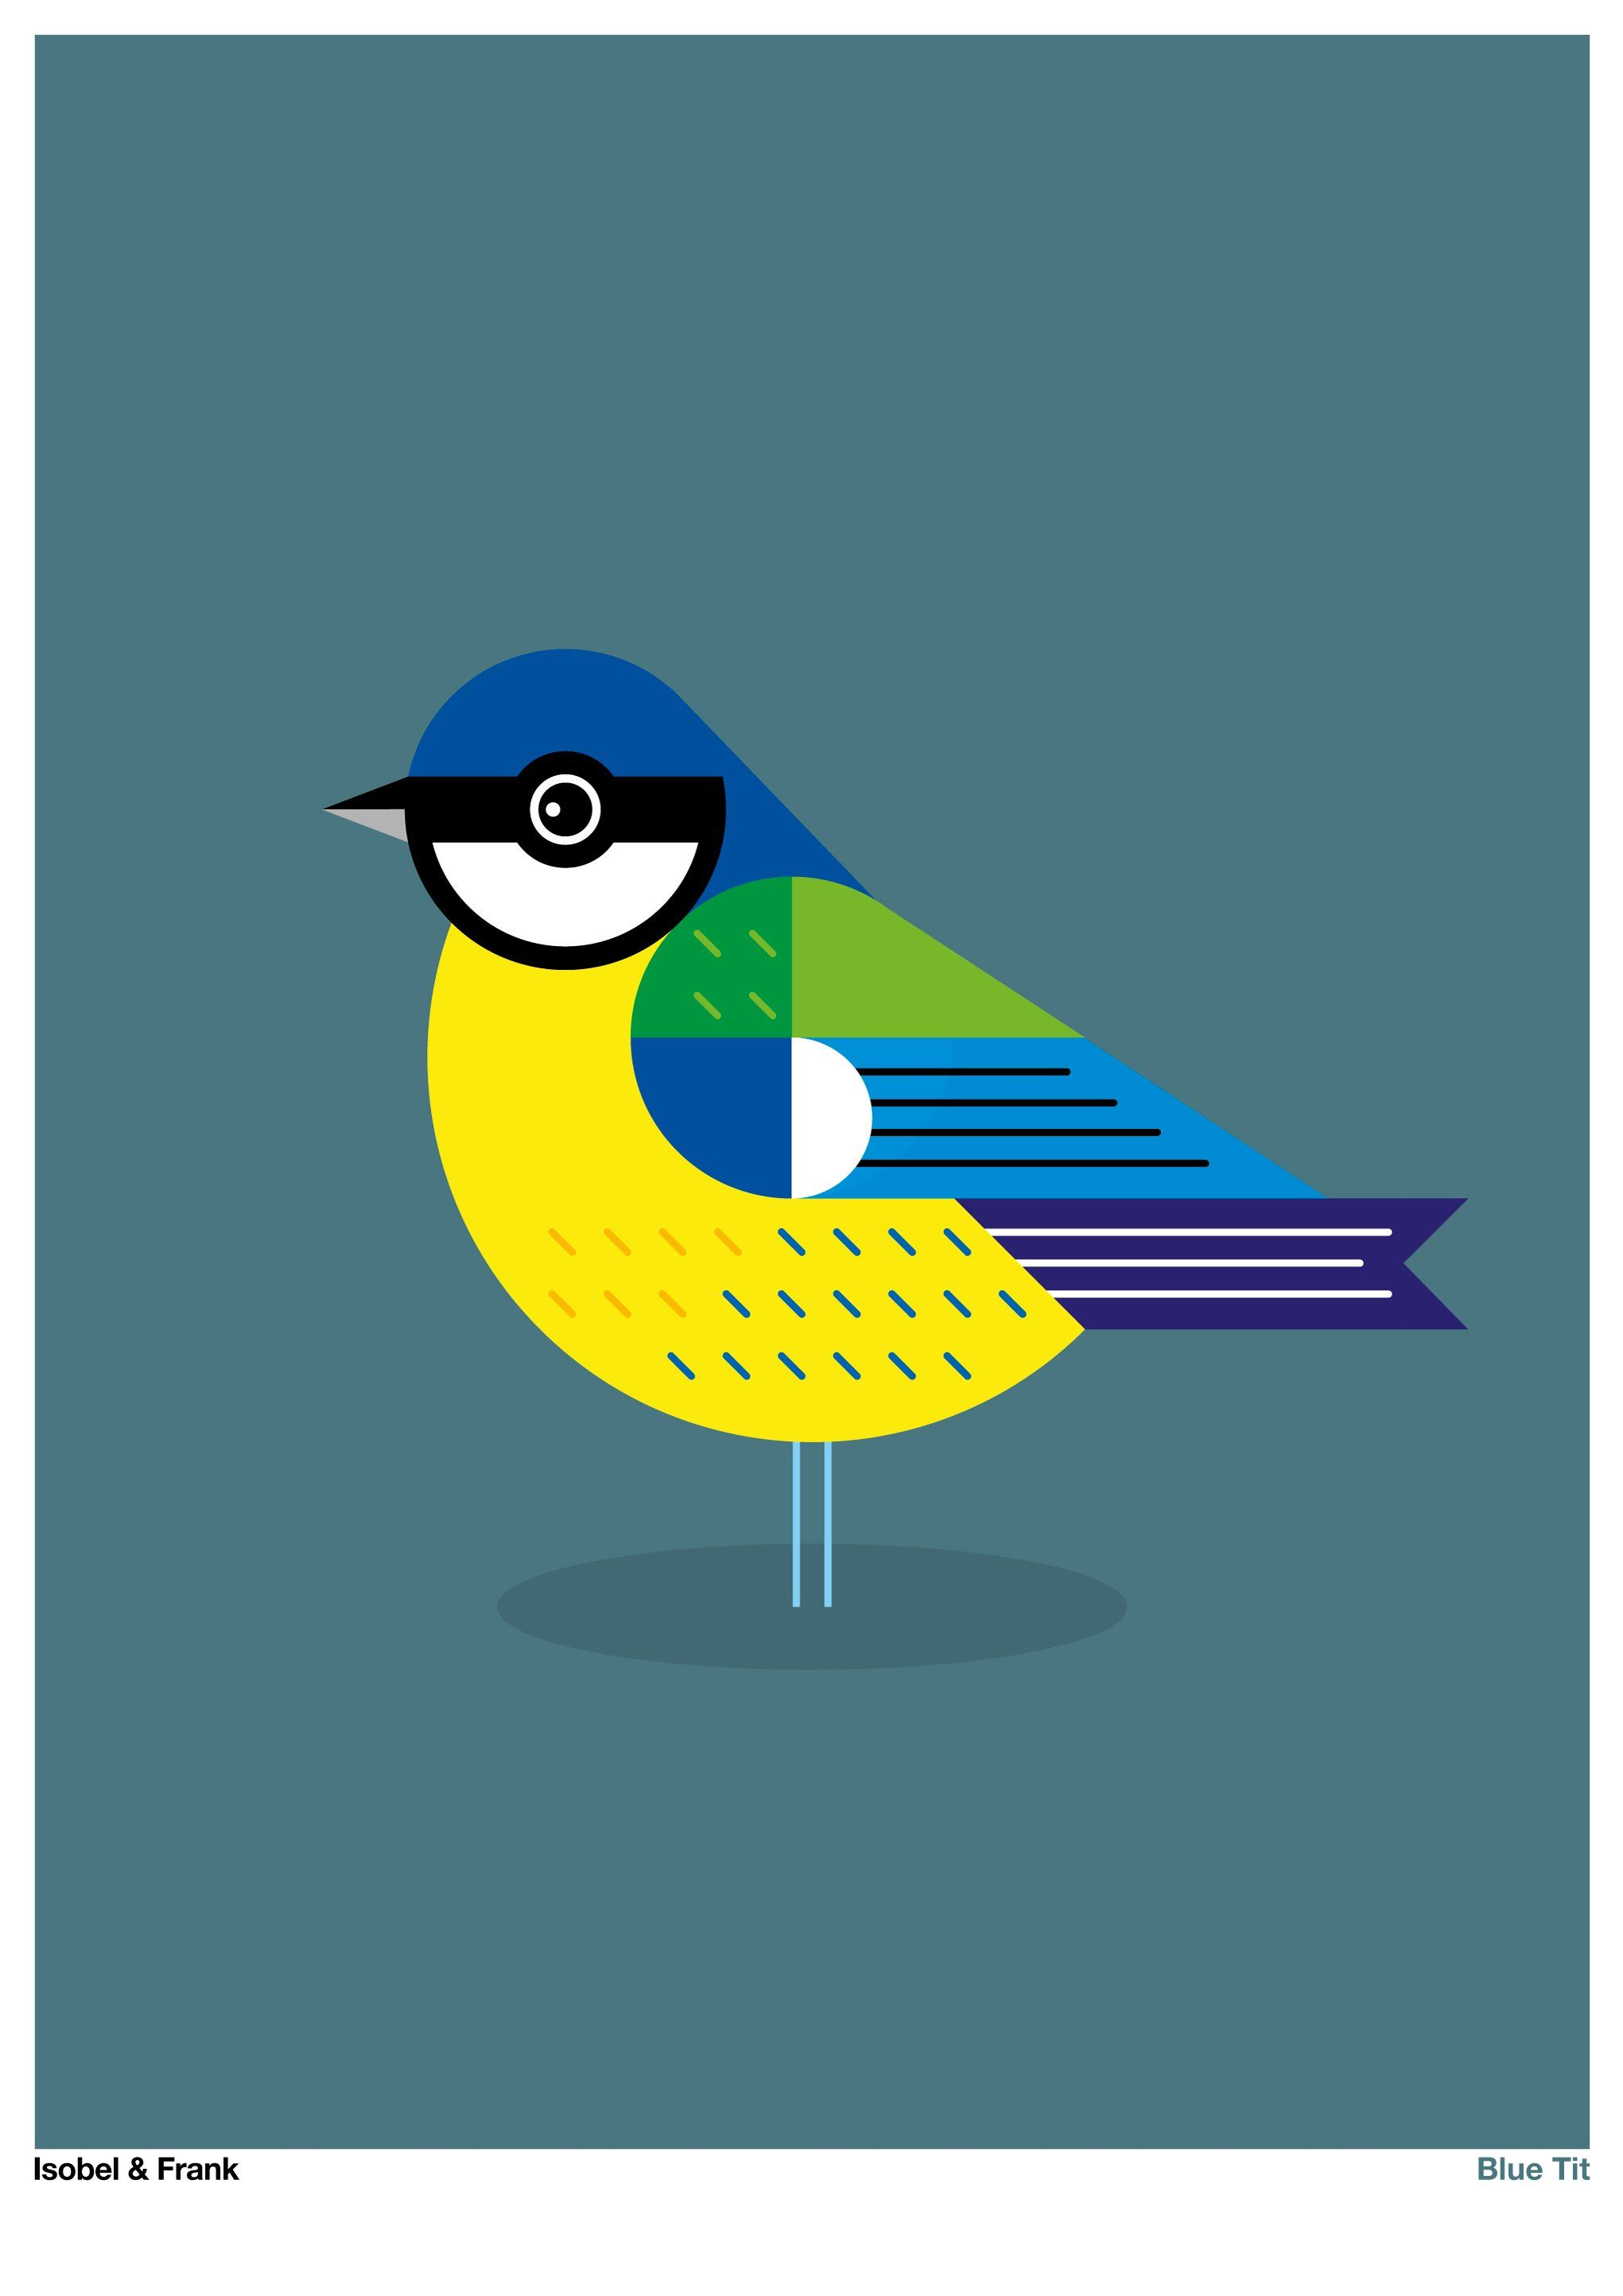 B is for Blue TitHi there, I'm a Blue Tit and no doubt you've seen me in your garden, or perhaps in woodland or farmland. I'm a rather colourful and curious character and I love to explore while looking for food. I like to think I'm an adventurorus eater...I'm rather fond of insects, caterpillars, seeds and nuts. So if you have a bird feeder in your garden, no doubt I'll visit you very soon! PrintAll our prints are produced on professional giclée printers, which reproduce extraordinary detail an